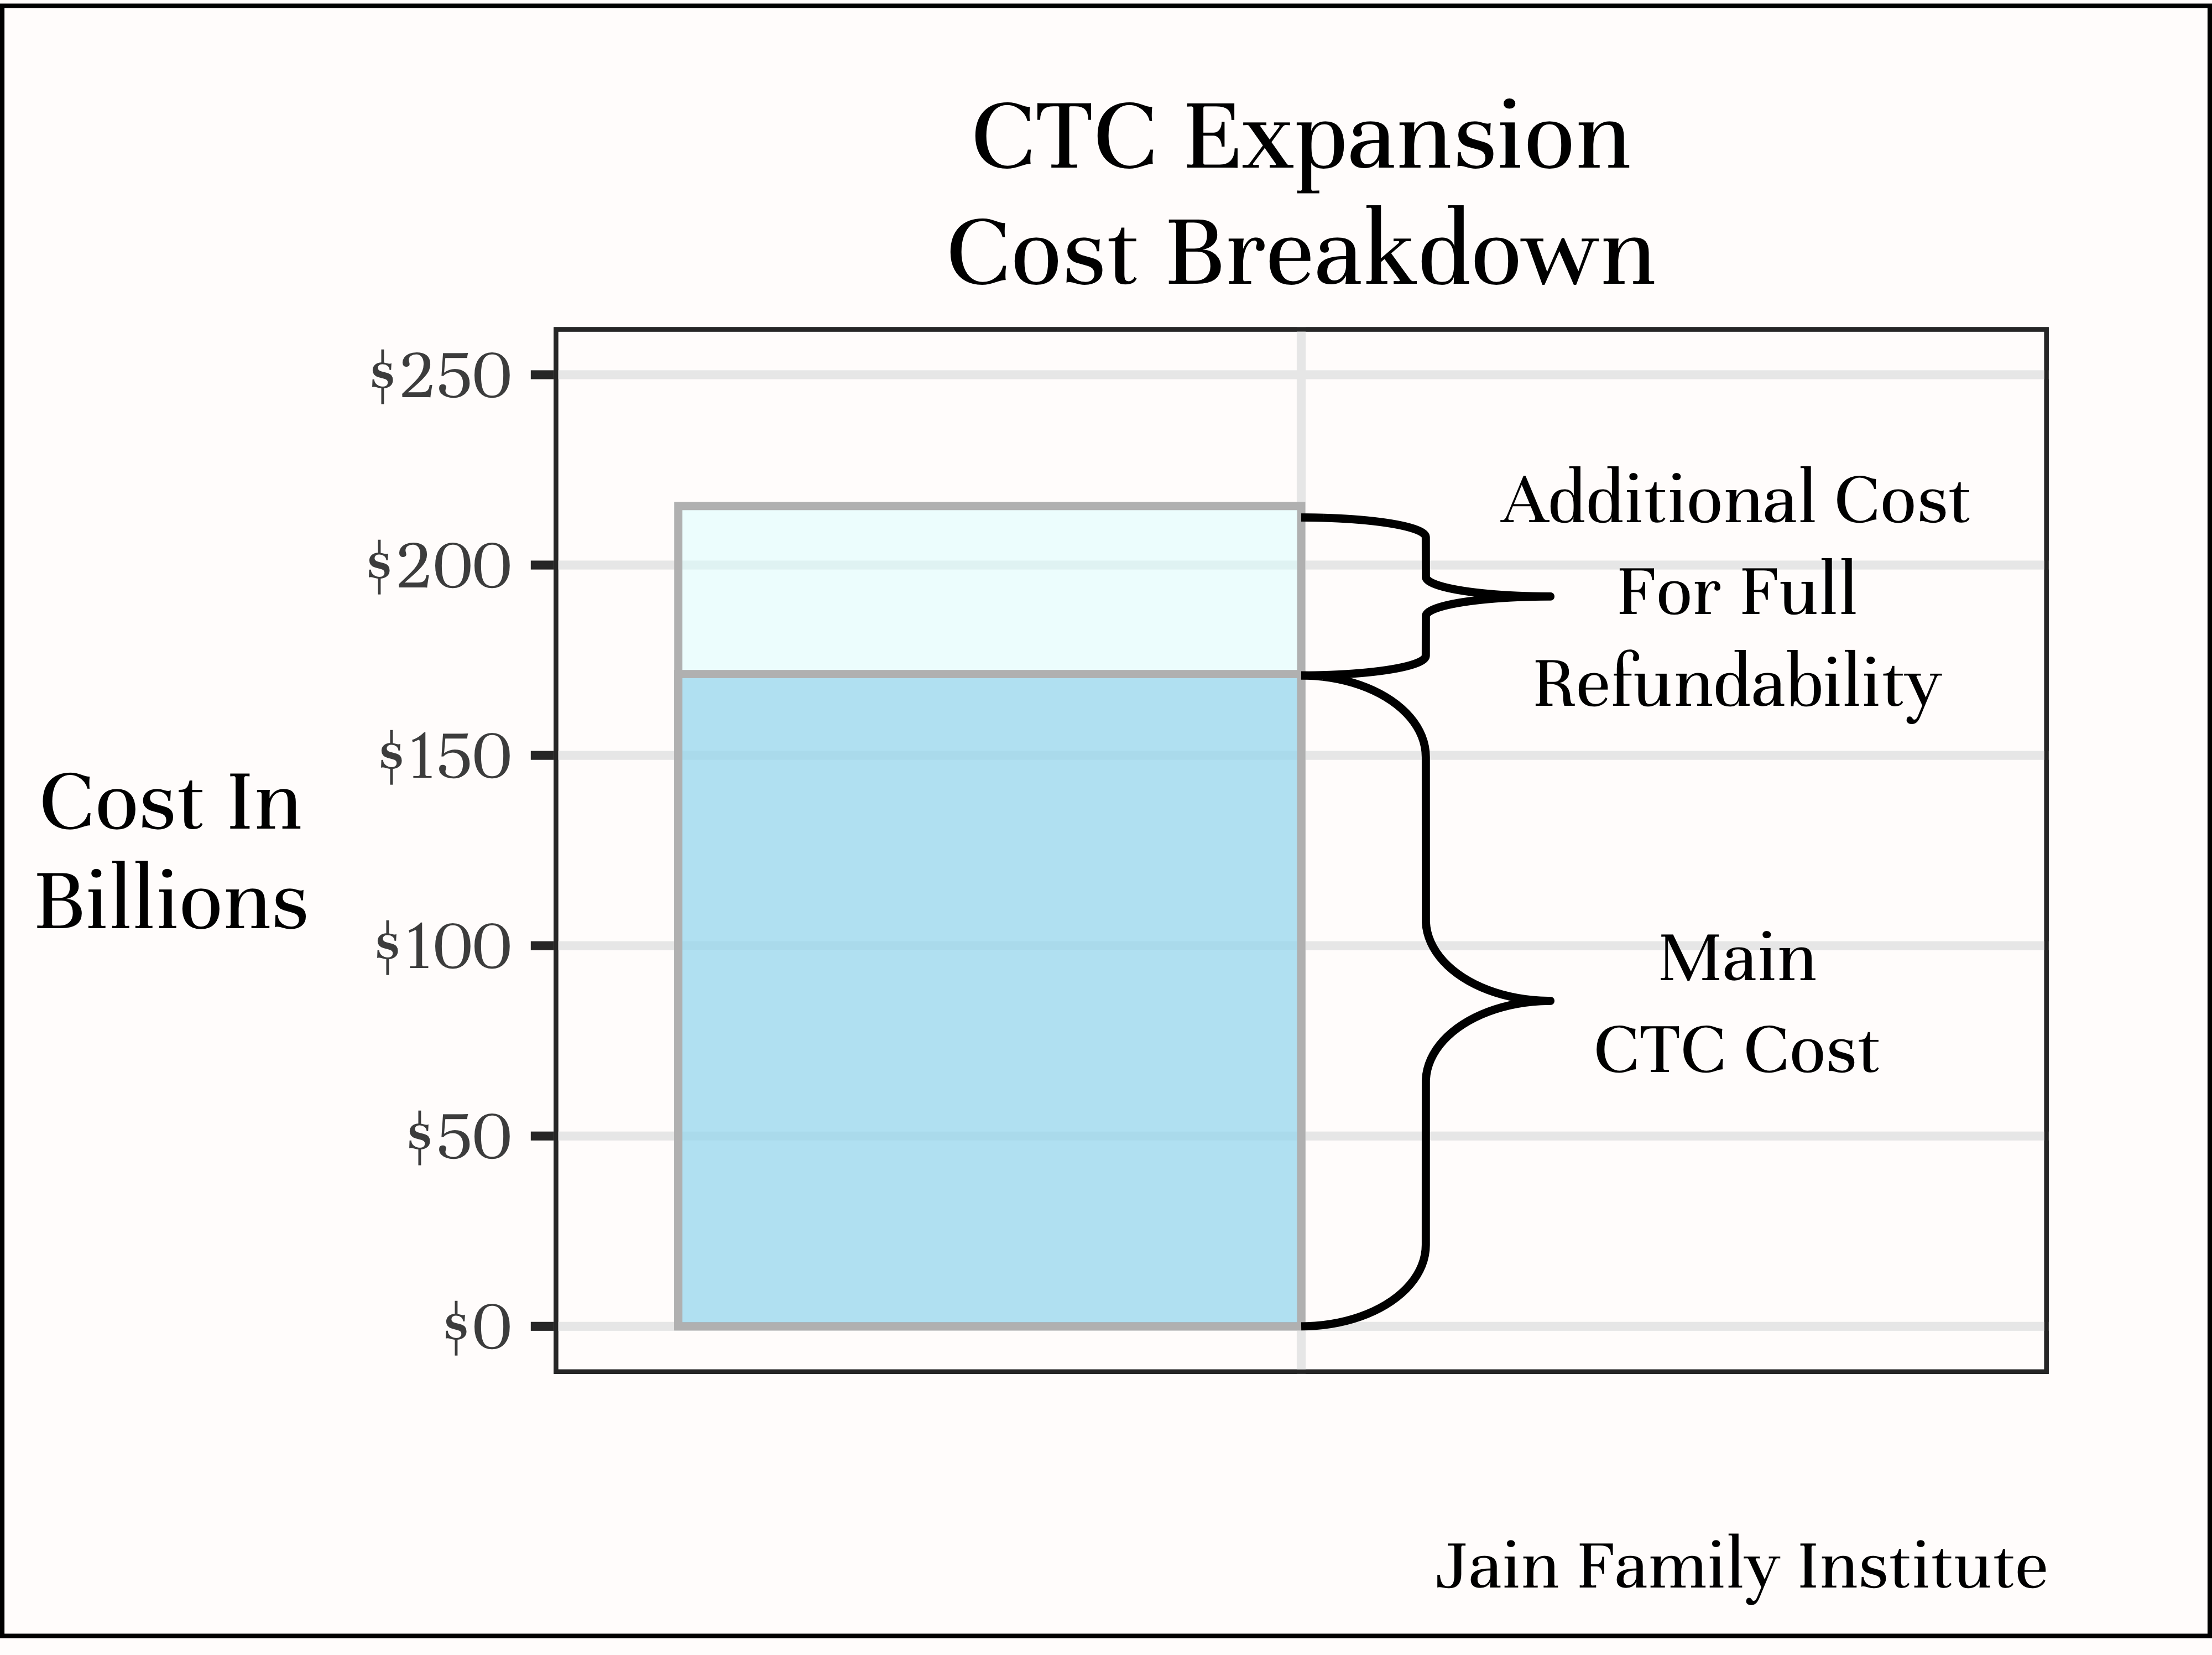 Cost breakdown of CTC expansion, showing little (relative) additional cost for full refundability.